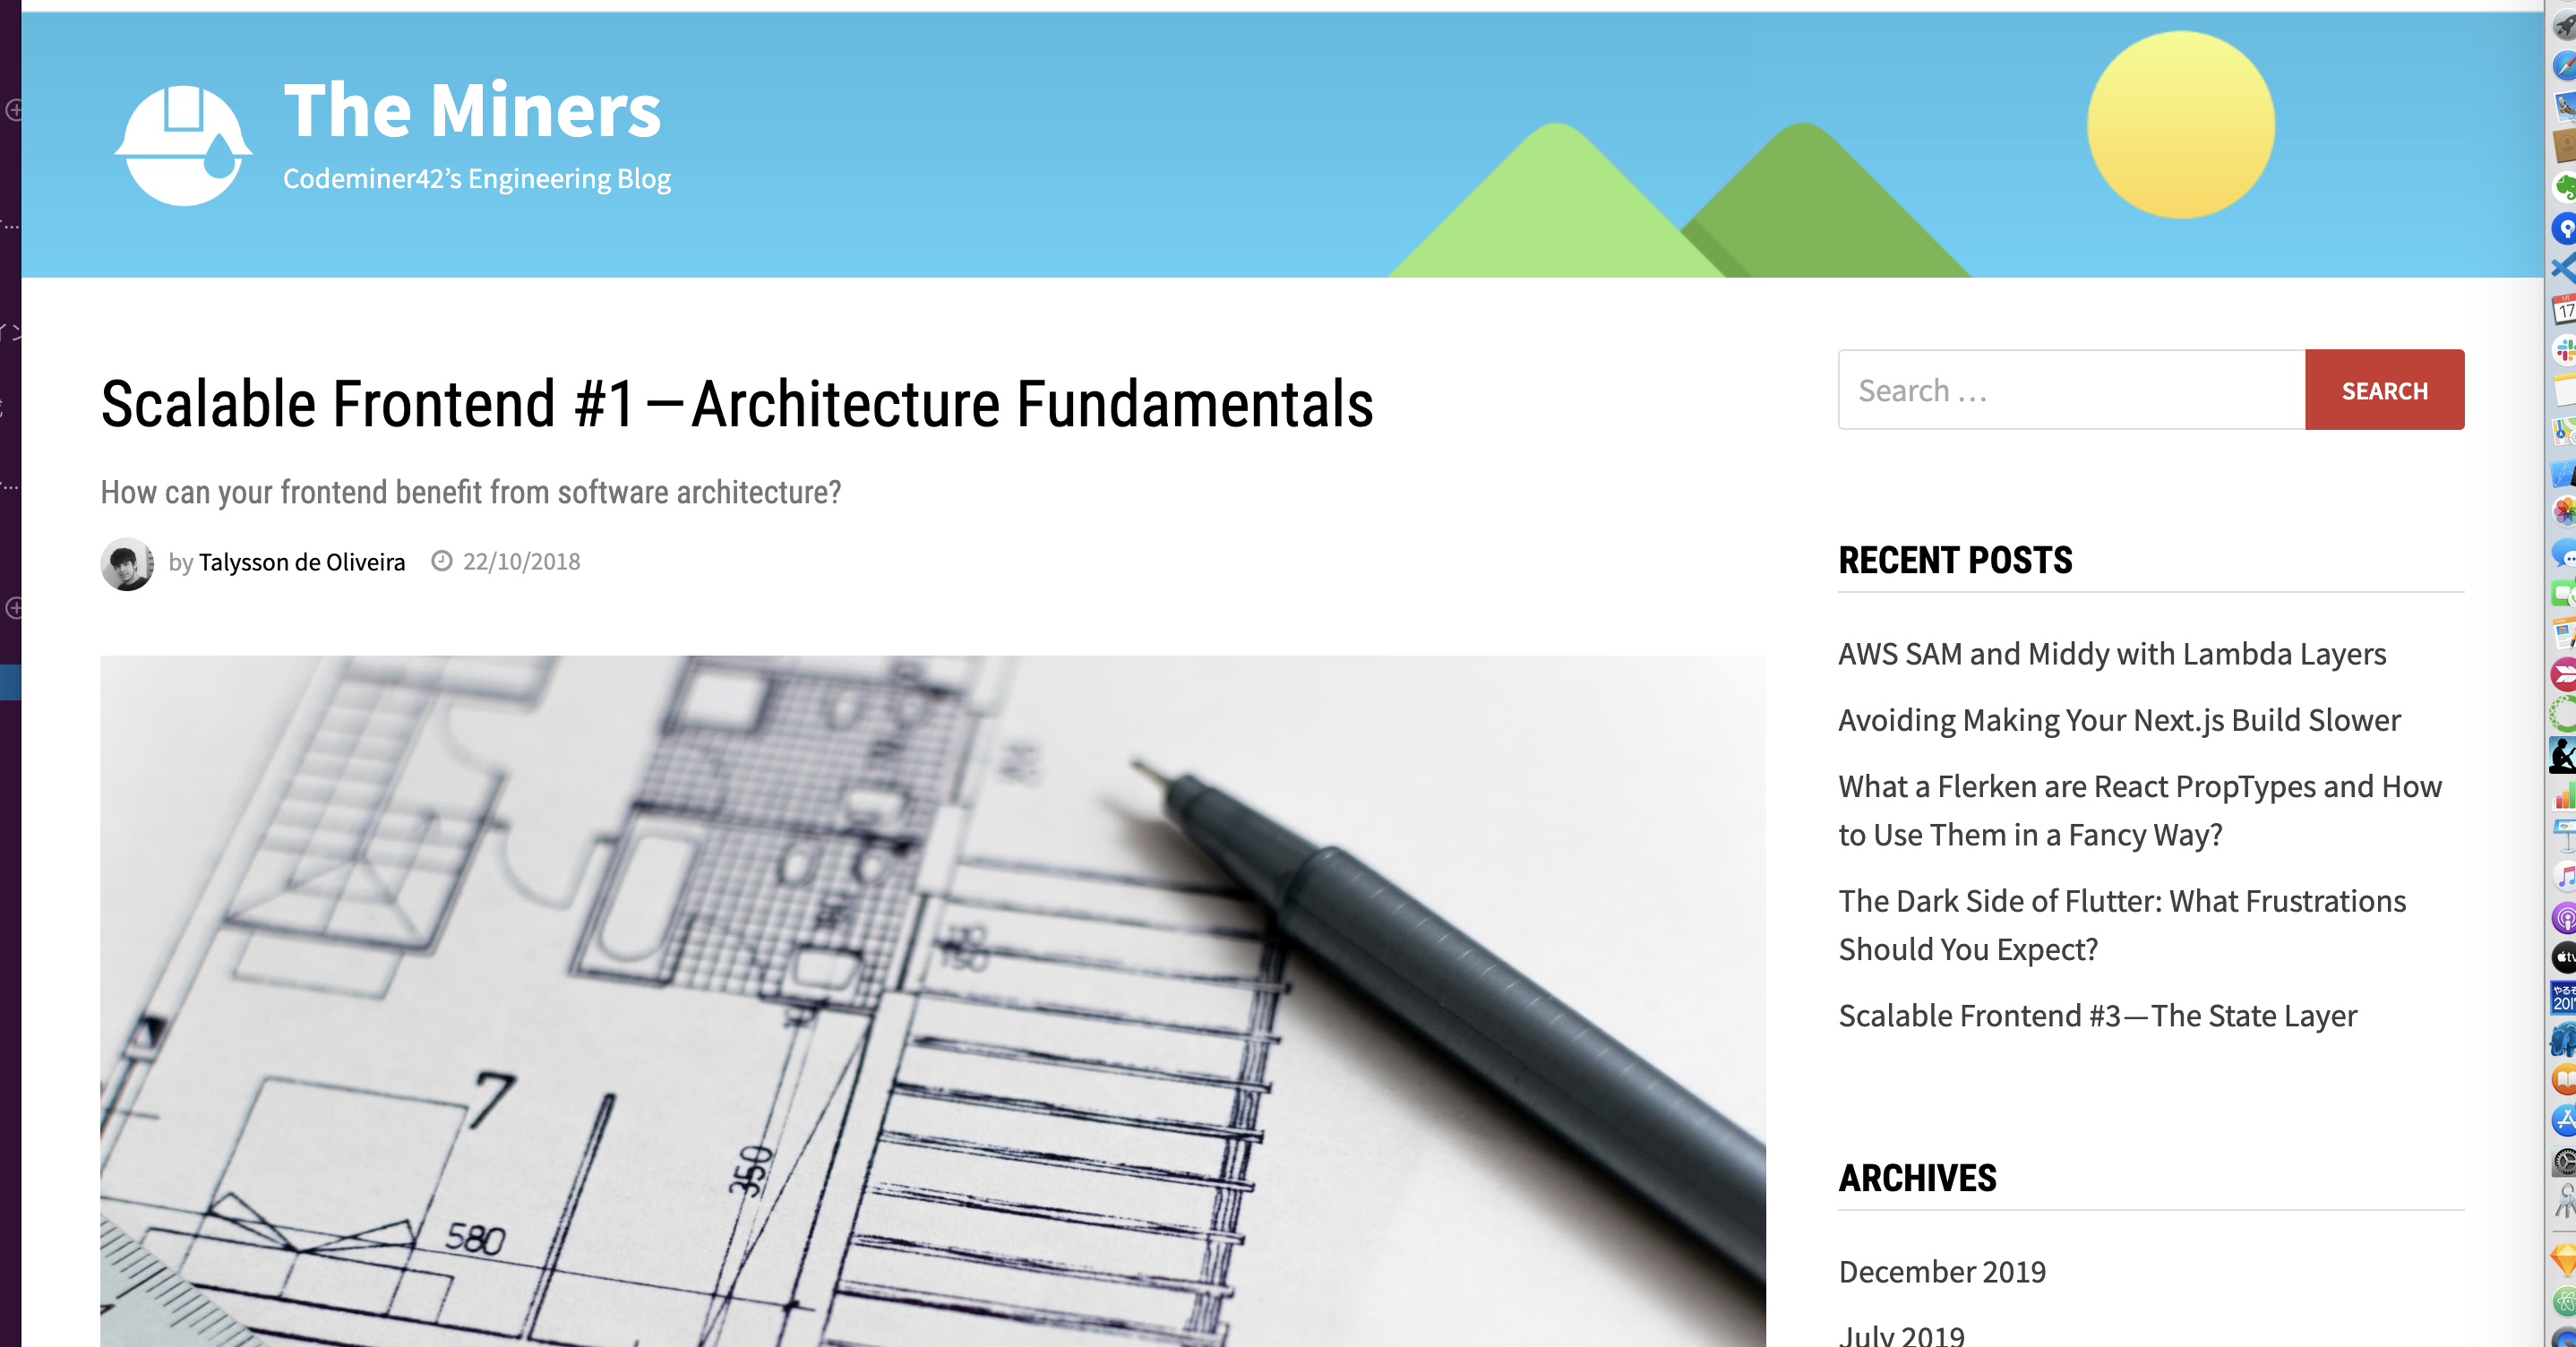 Scalable Frontend #1 — Architecture Fundamentals